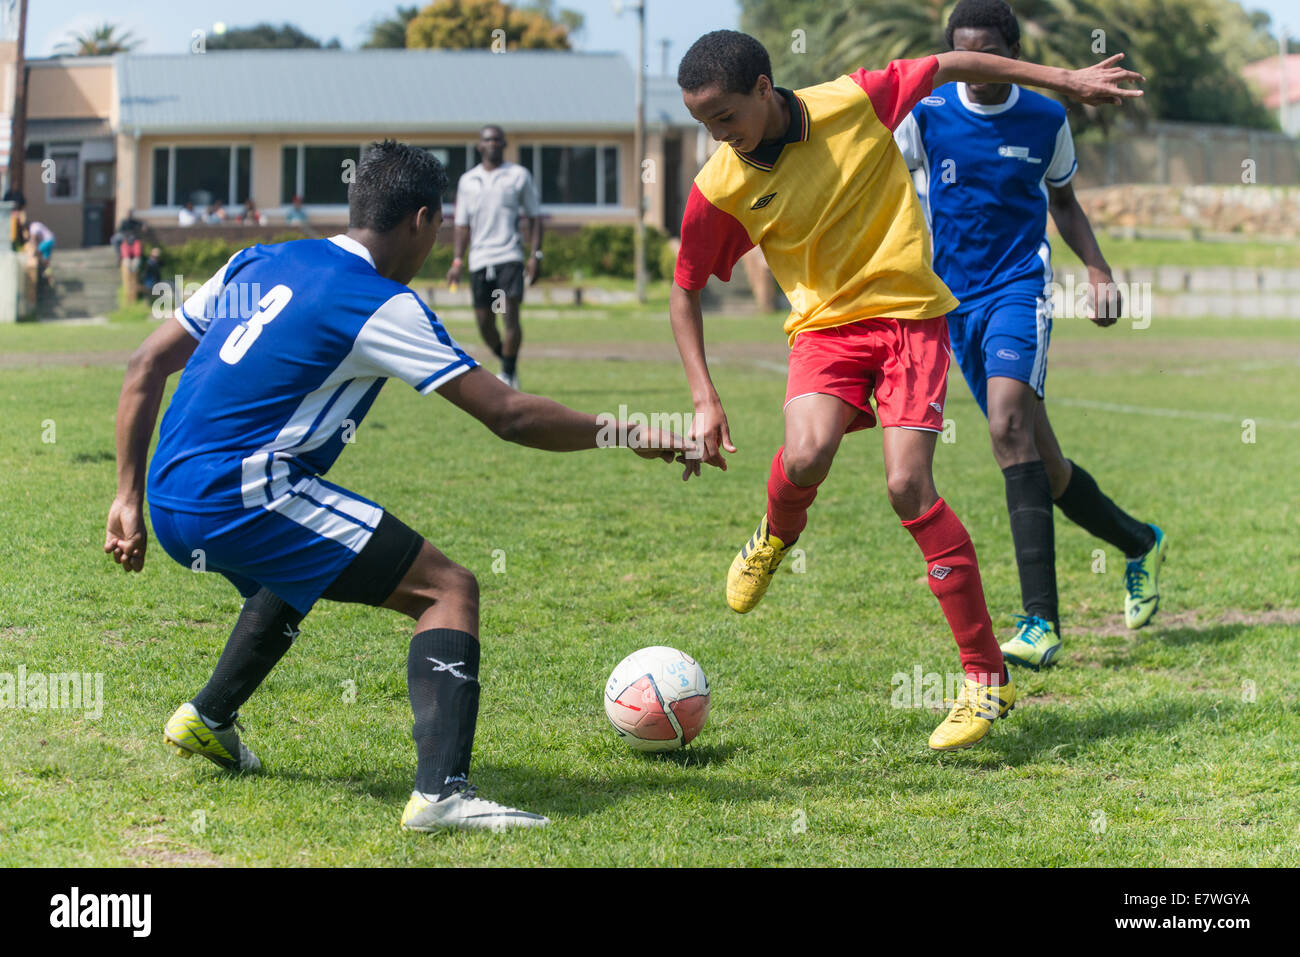 Young football players dribbling for the ball, Cape Town, South Africa - Stock Image